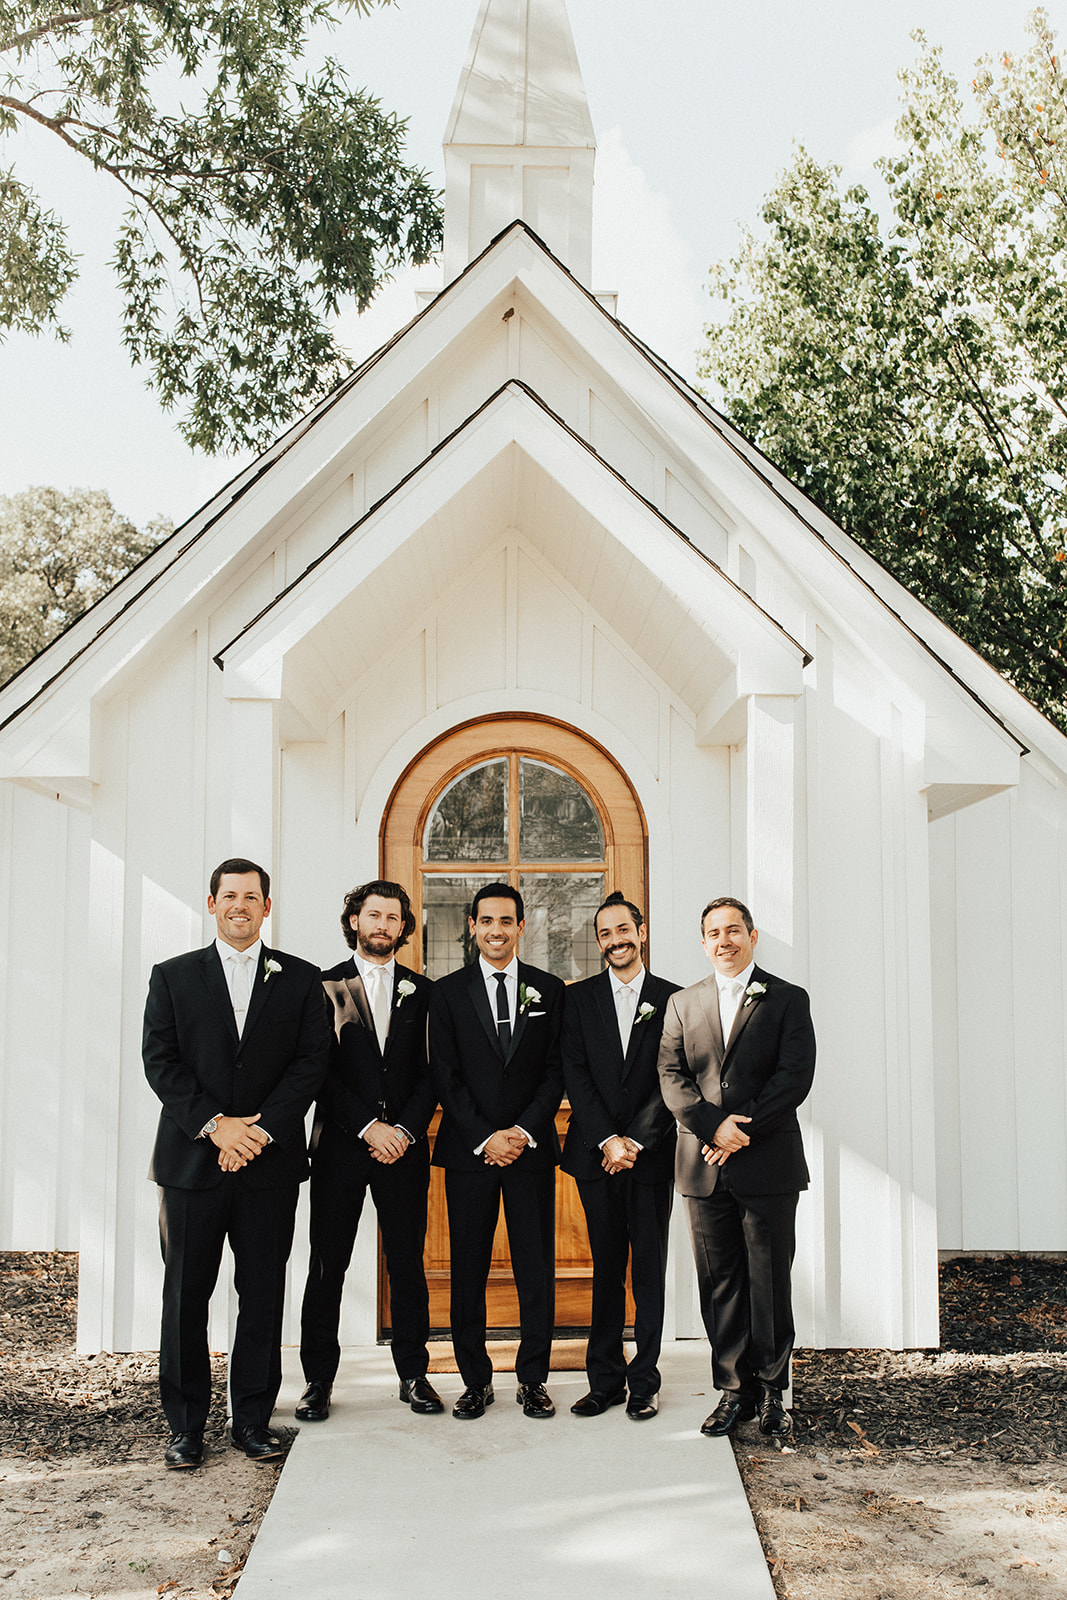 Black and White Groomsmen Tuxedos